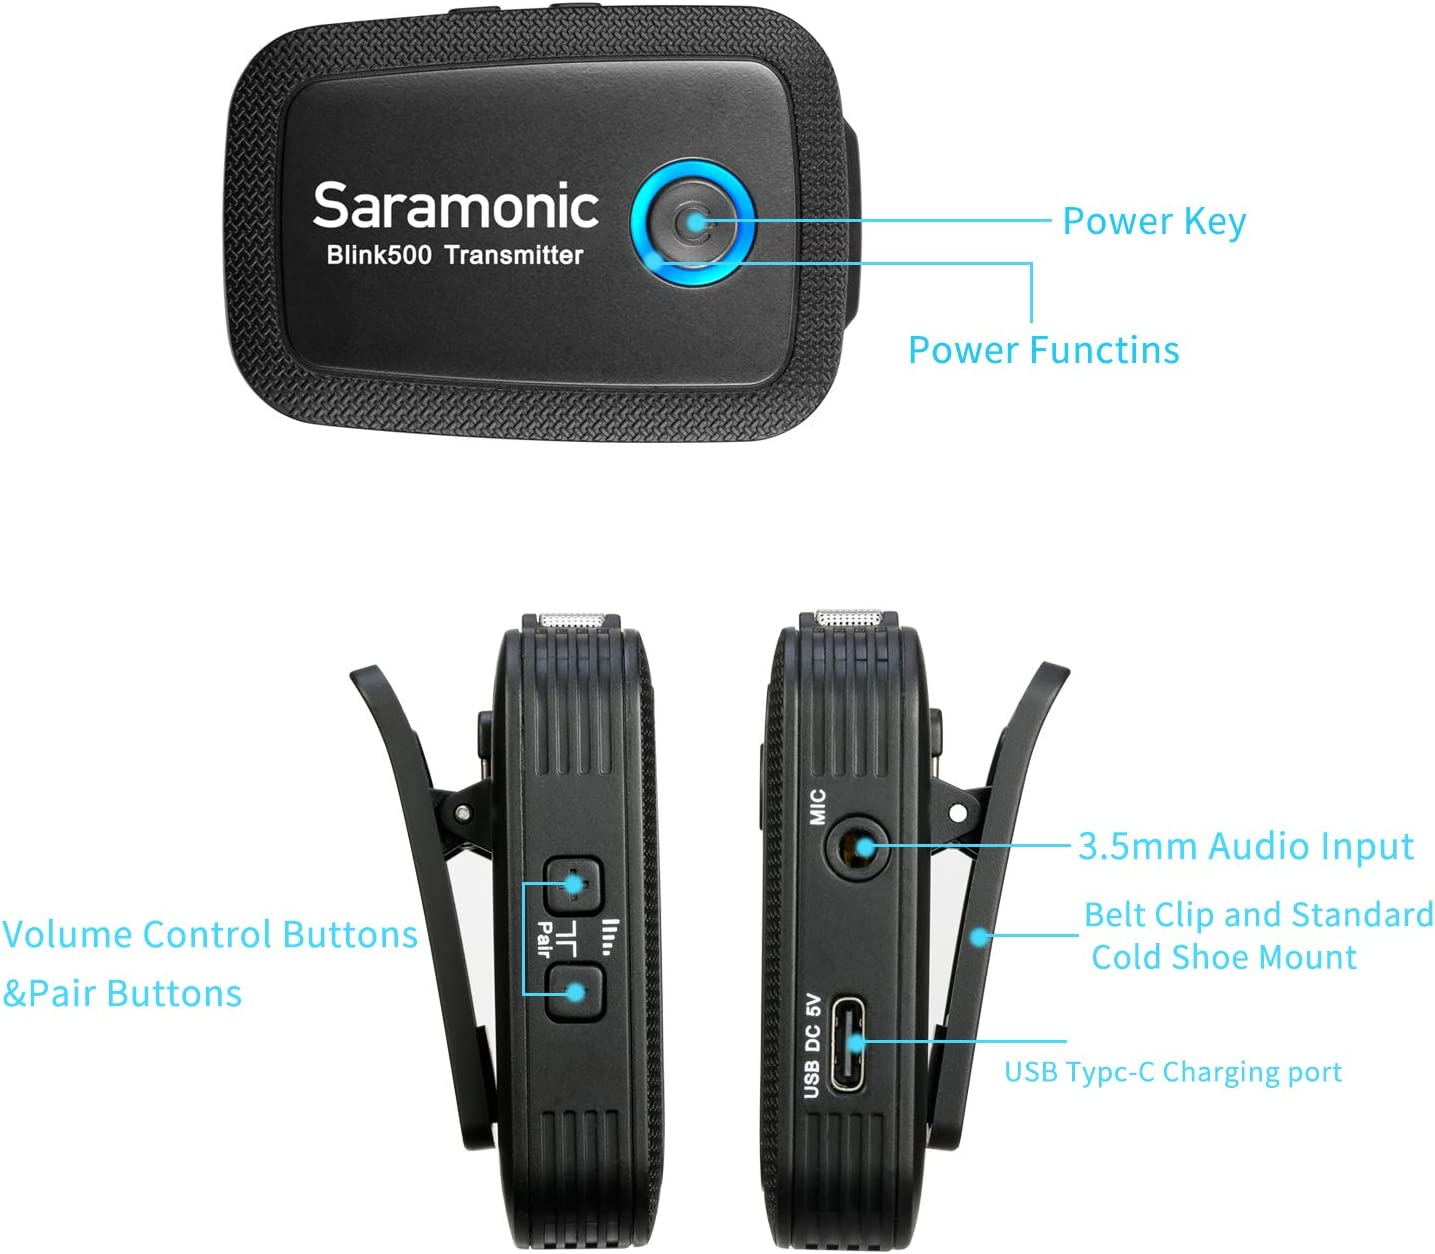 Saramonic Ultracompact 2.4GHz Dual-channel Wireless Microphone Kit Blink 500 2 Transmitters with 1 Receiver for DSLR Mirrorless Video Canon Nikon Camera IOS Android Phone